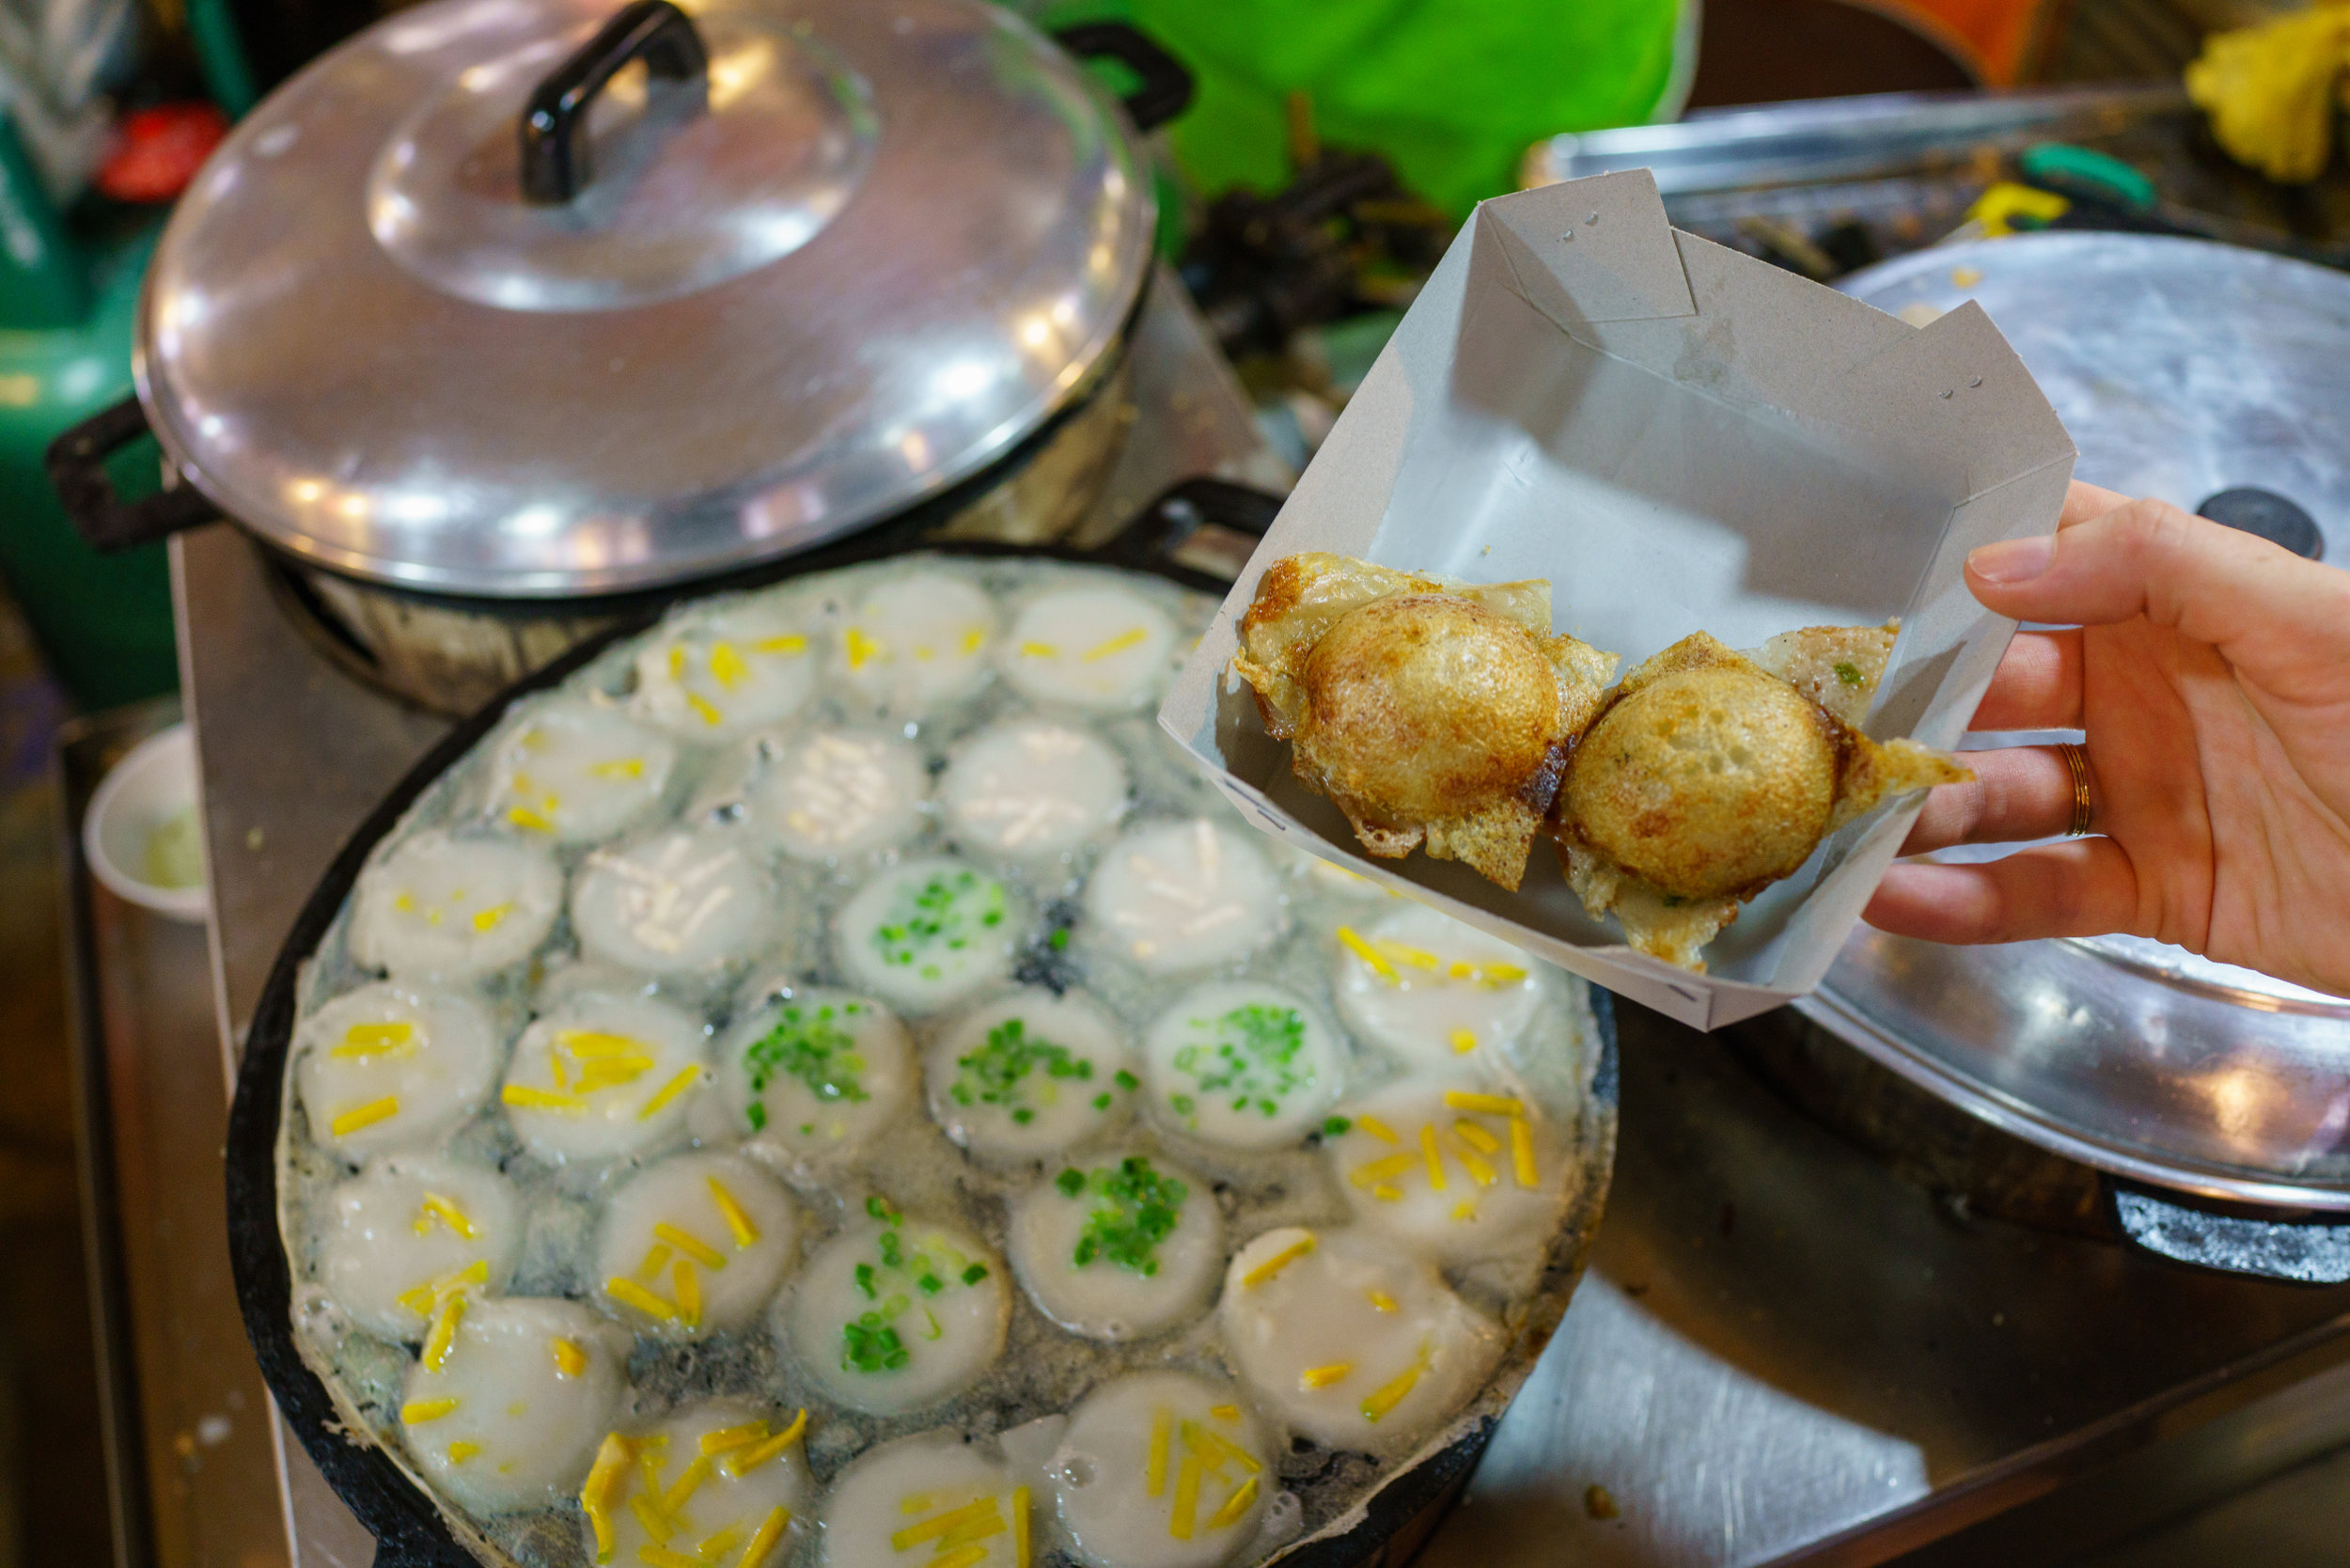 Kanom krok are considered a sweet, but are made with some savory ingredients